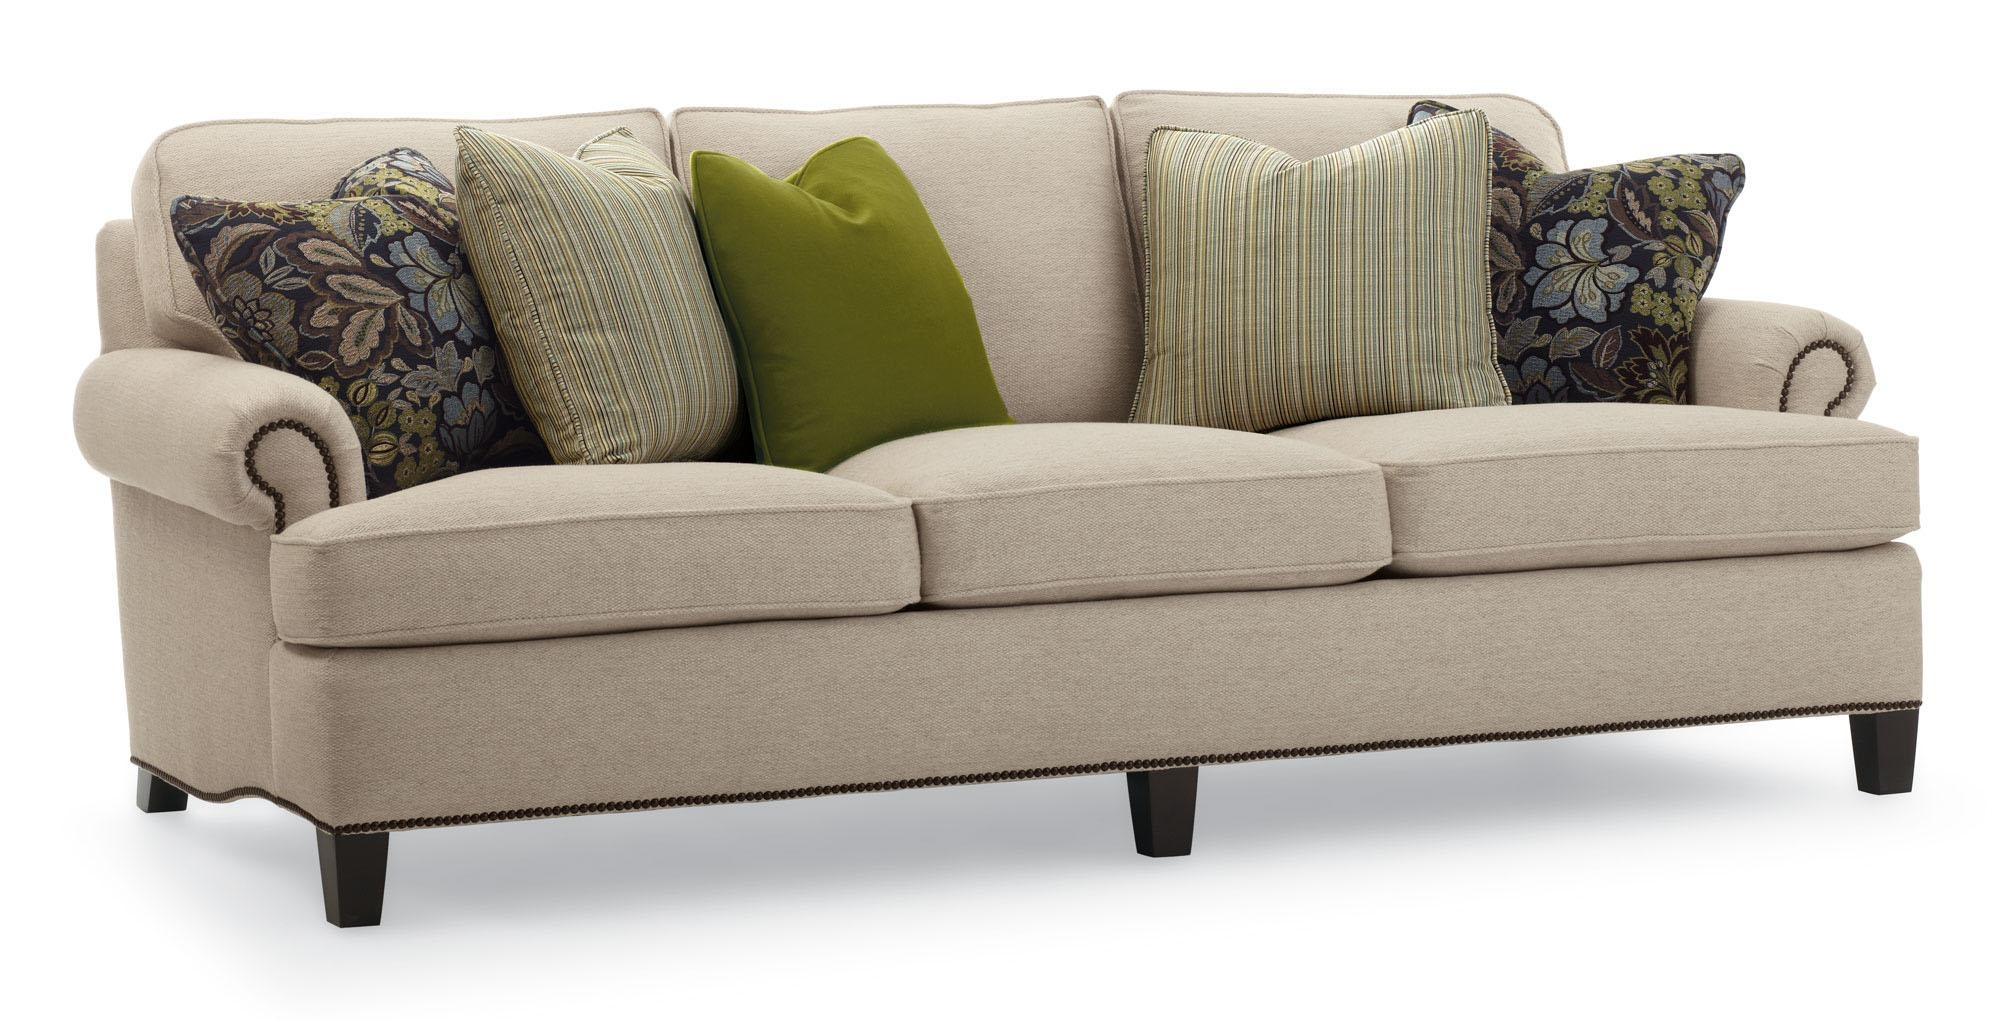 bernhardt brae sectional sofa best small apartment sofas 20 ideas of